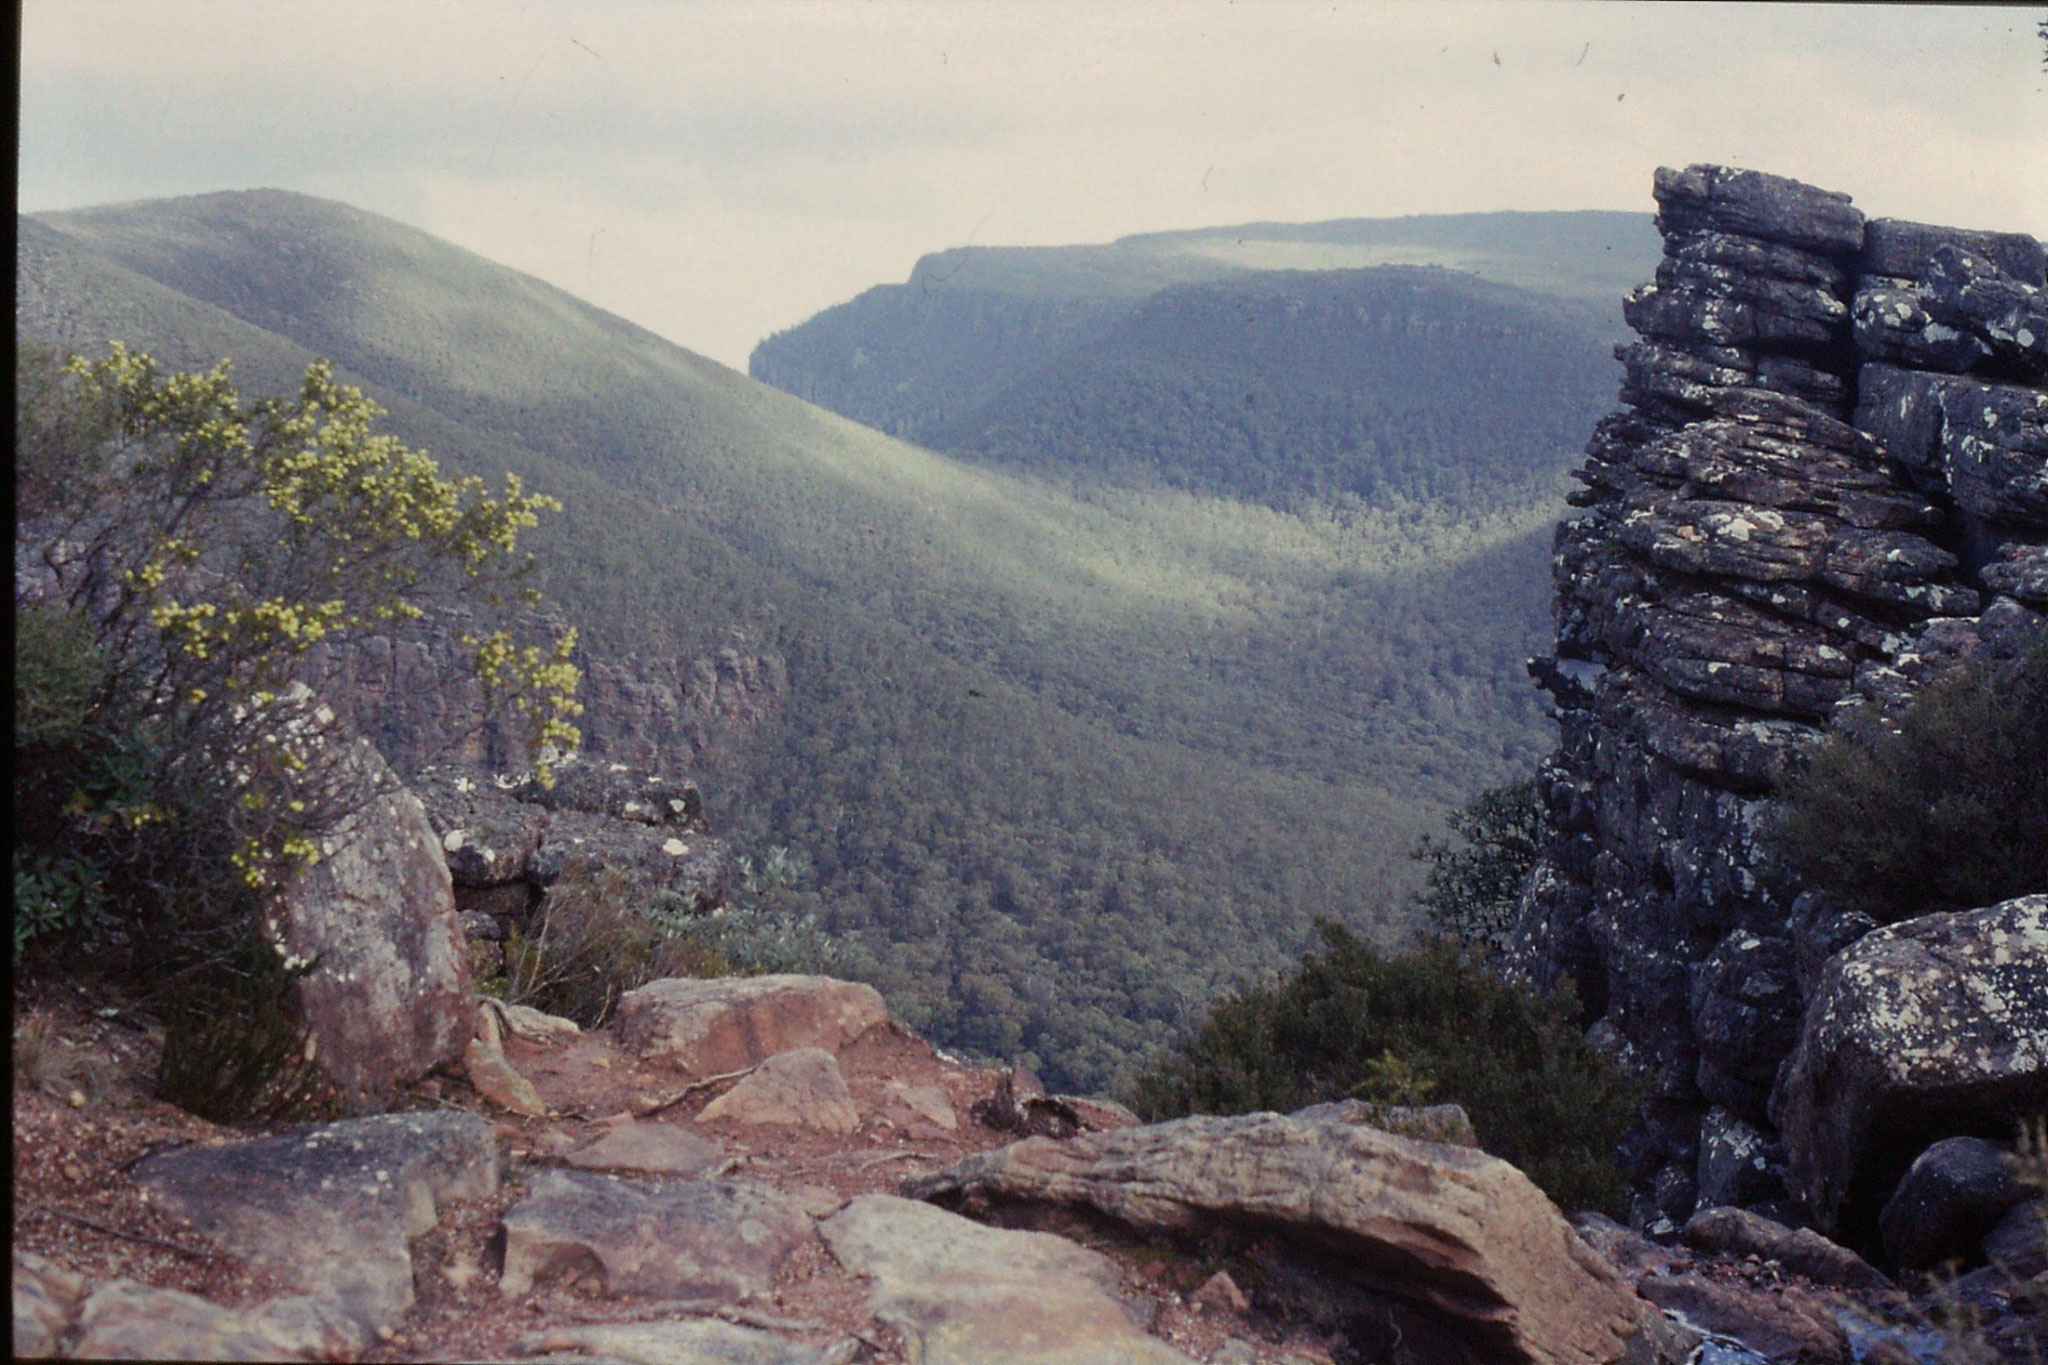 21/9/1990: 3: view south over Major Mitchell's Plateau from road up Mt William